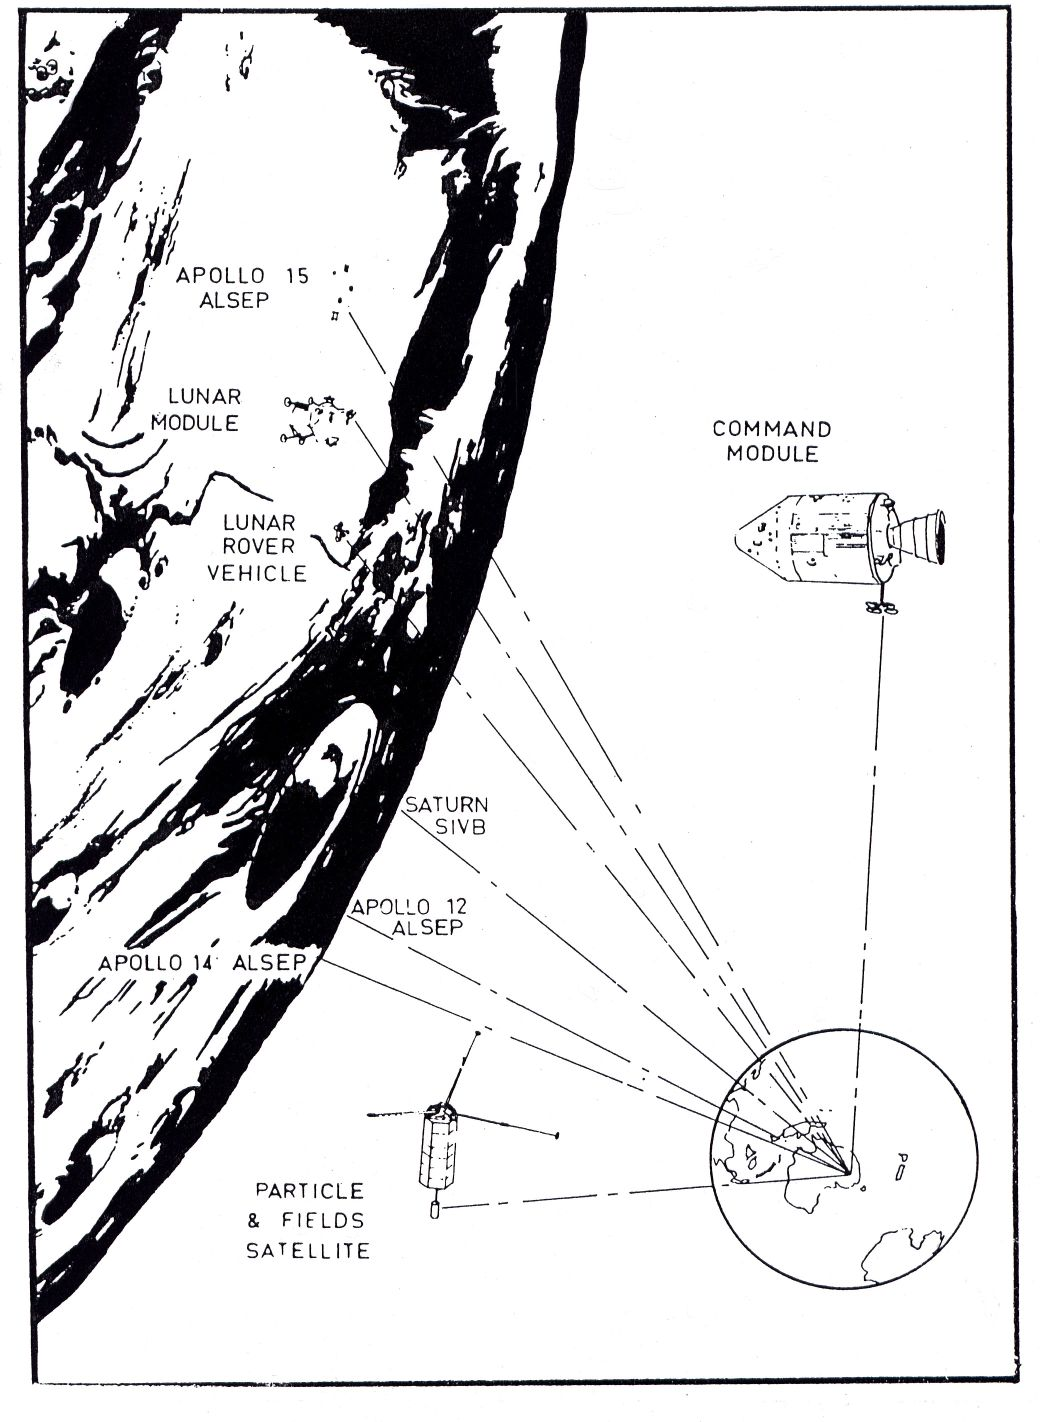 Apollo 15 By Hamish Lindsay Westpointe 3 Speed Fan Wiring Schematic This Diagram Of Communication Requirements During The Mission Gives An Idea Complex Configurations Needed At Honeysuckle